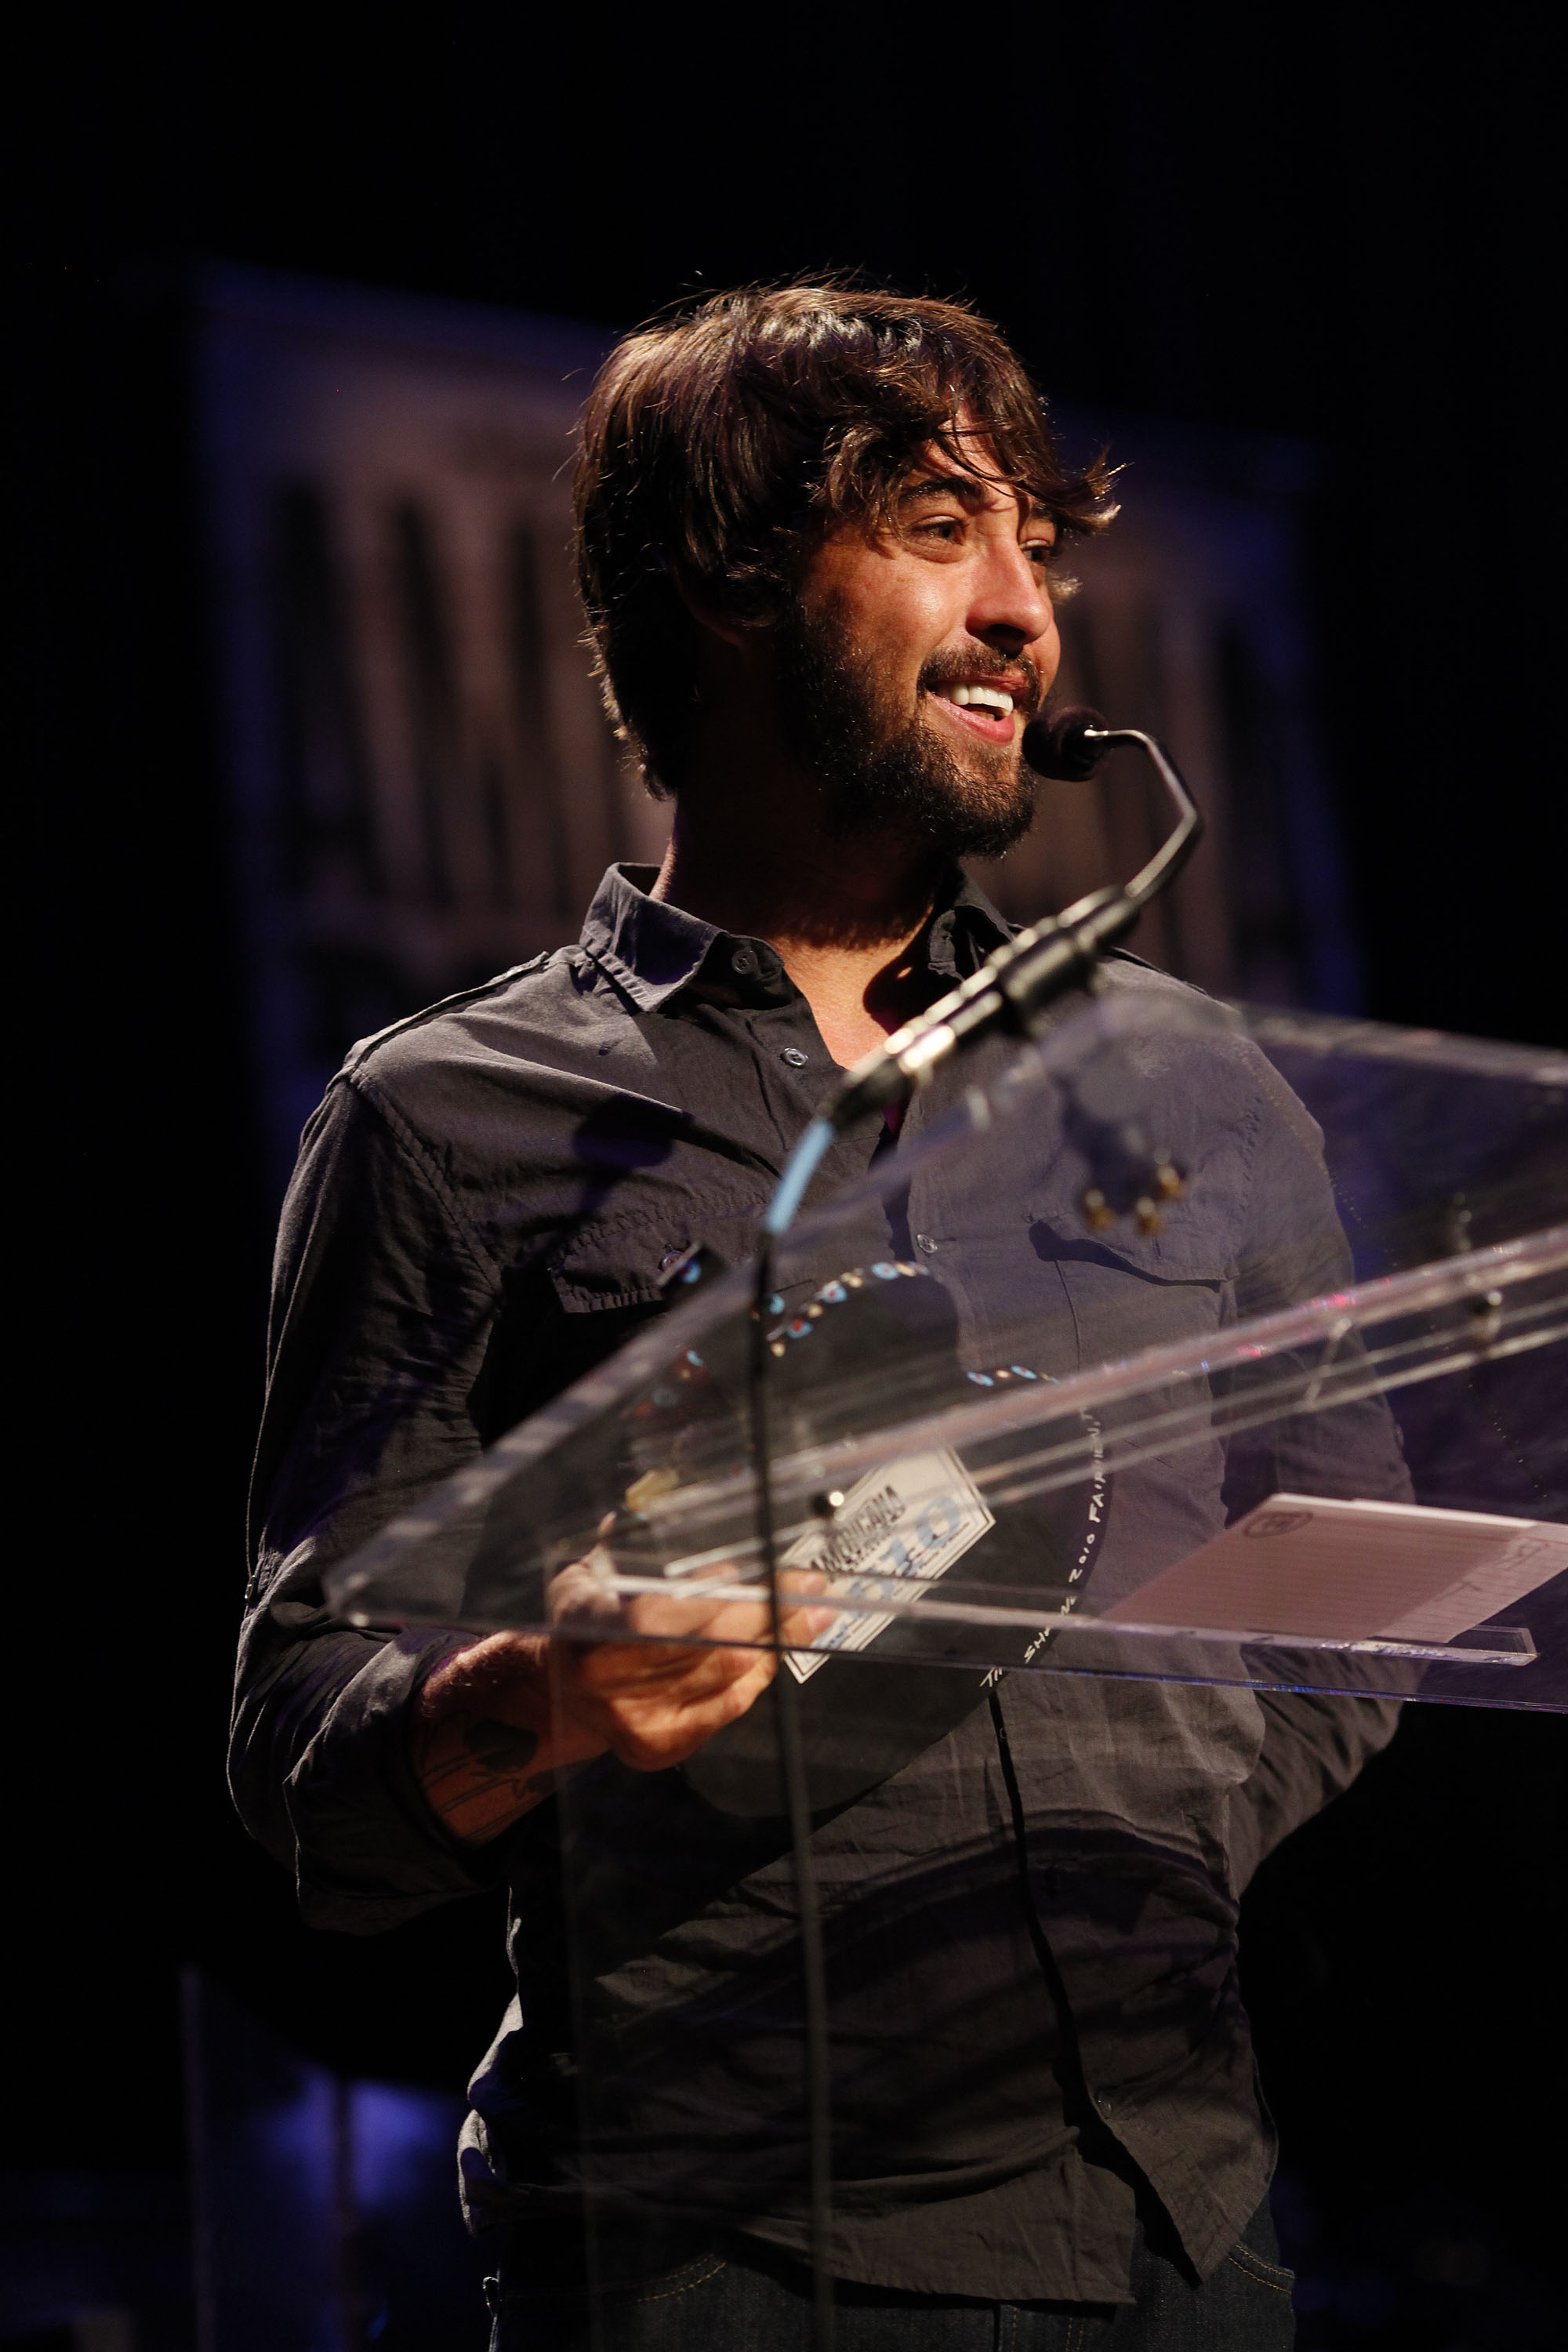 Ryan Bingham accepts the award for Artist of the Year during The Americana Music Awards at The Ryman Auditorium, in Nashville TN. on Thursday.